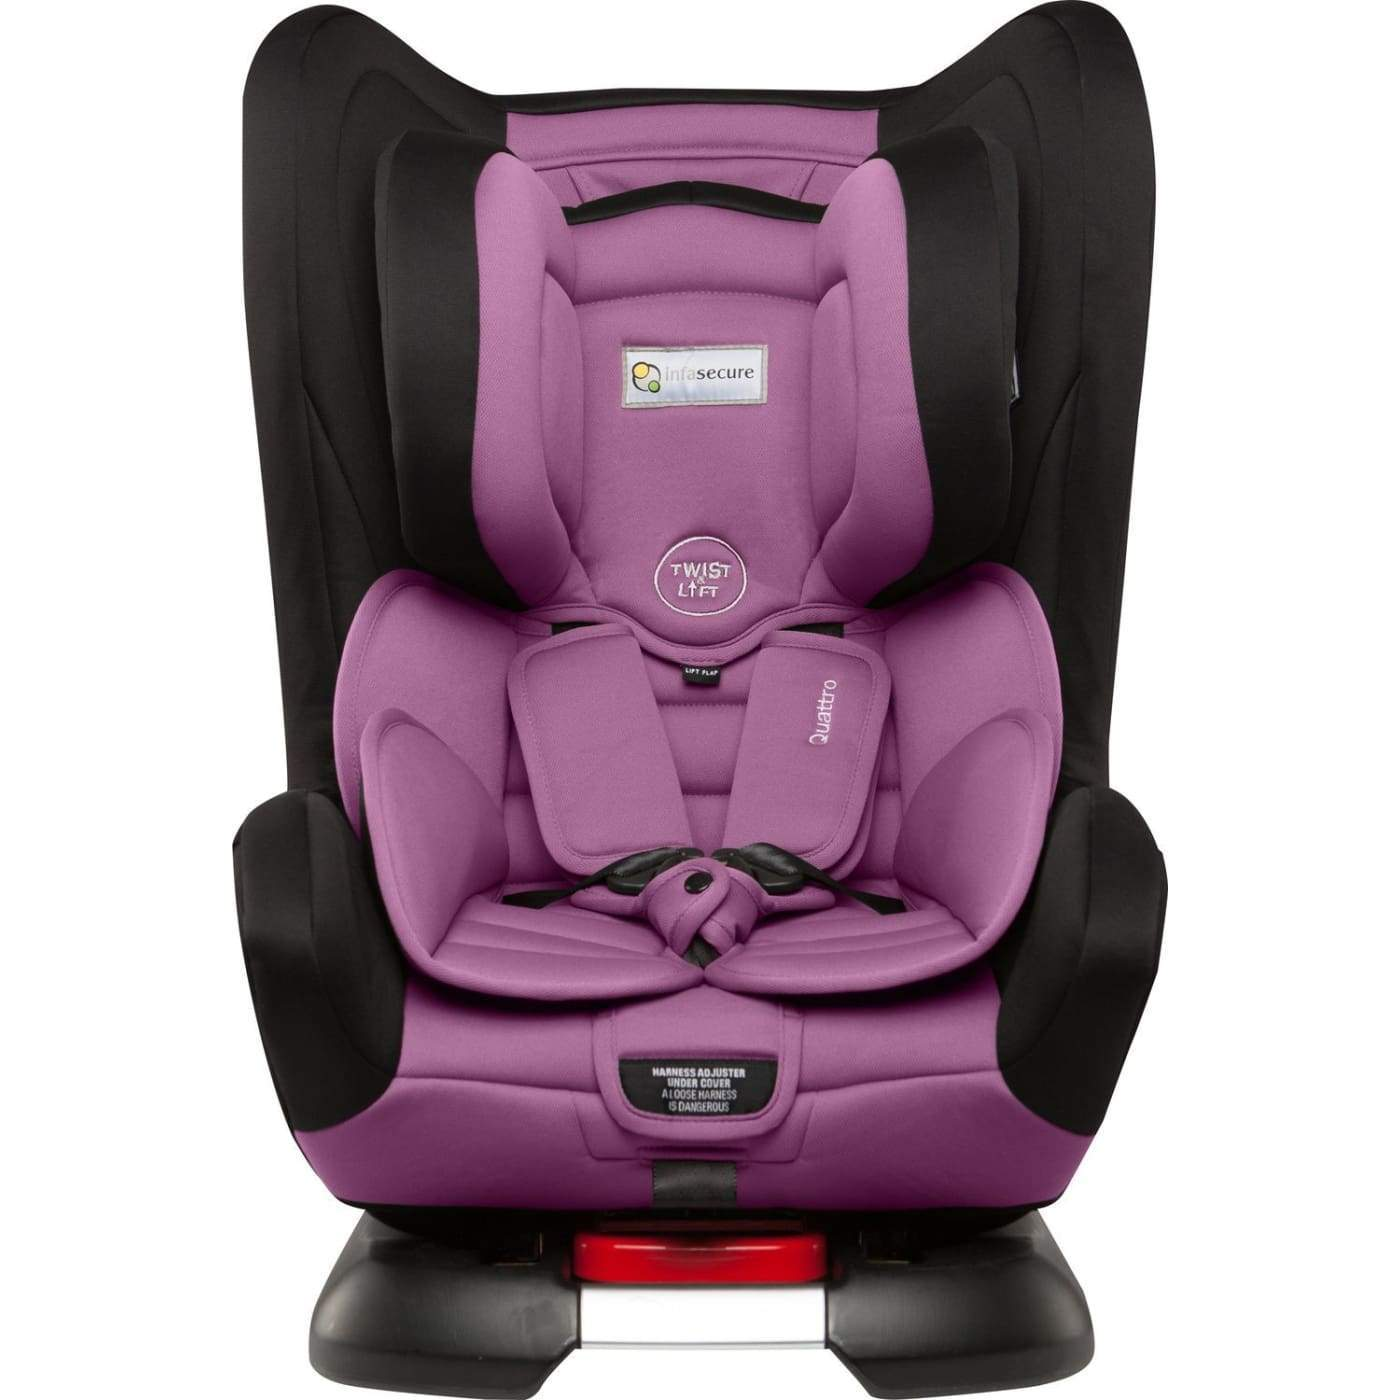 InfaSecure Astra Quattro Convertible Car Seat 0-4YR - Purple - CAR SEATS - CONV CAR SEATS (0-4YR)